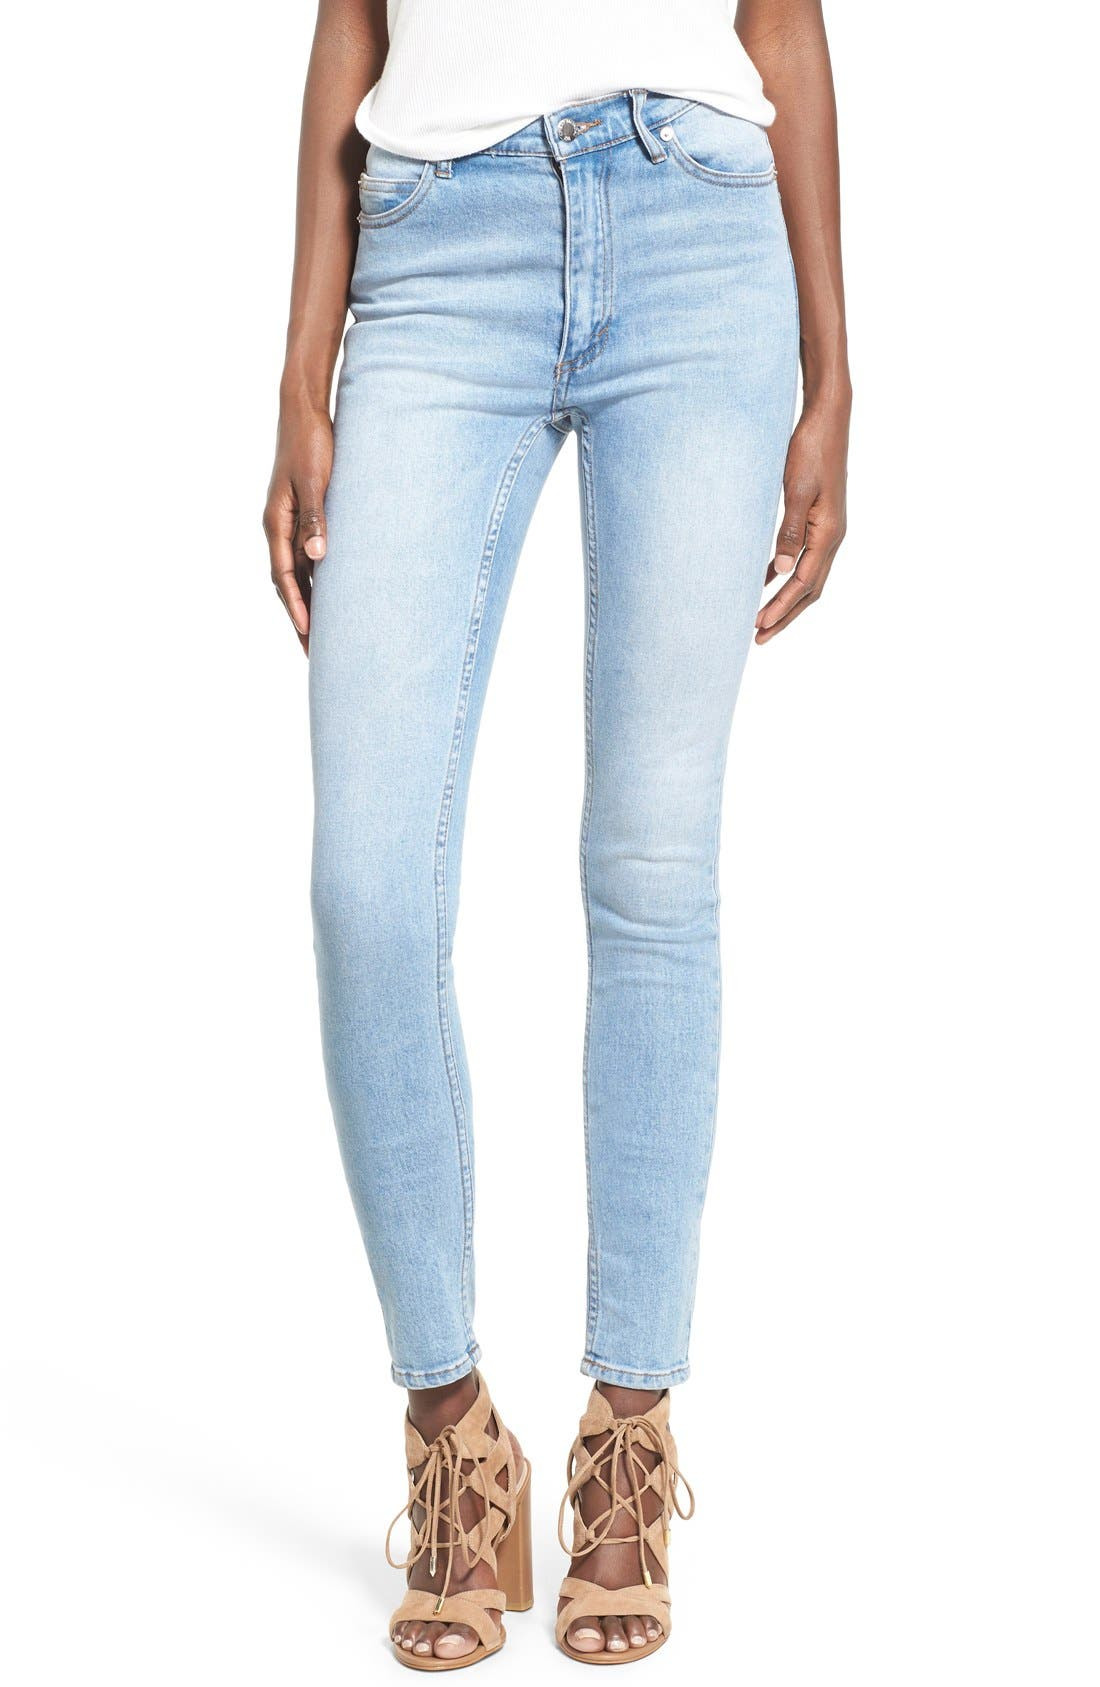 Alternate Image 1 Selected - Cheap Monday 'Second Skin' Skinny Jeans (Stonewash Blue)